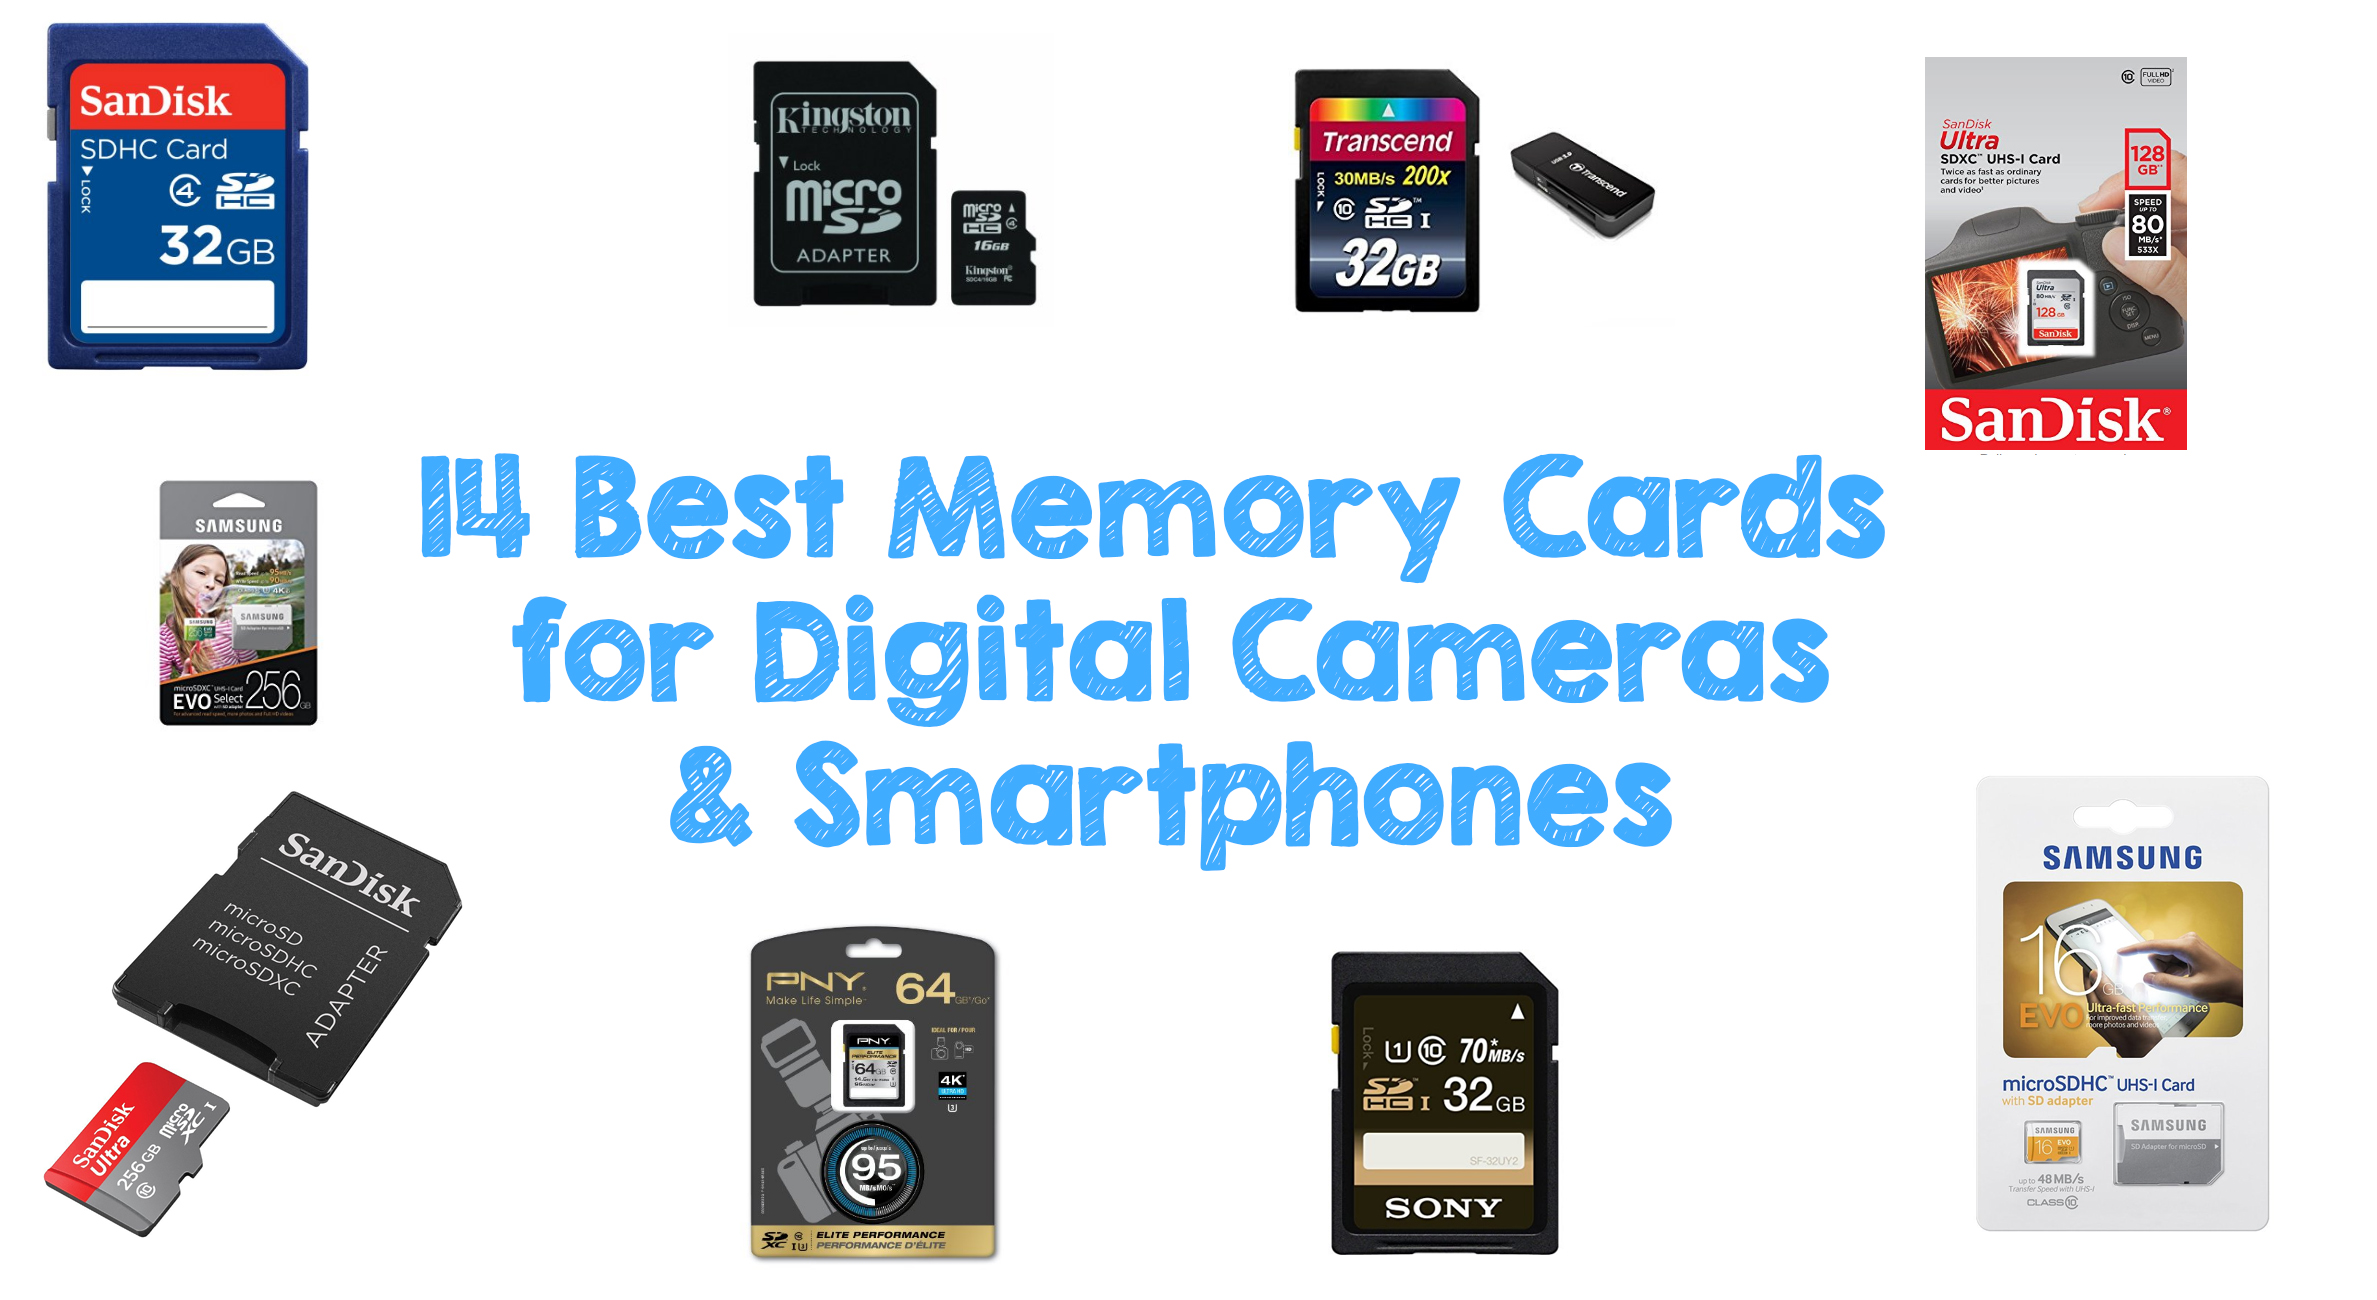 14 Best Memory Cards for Digital Cameras & Smartphones